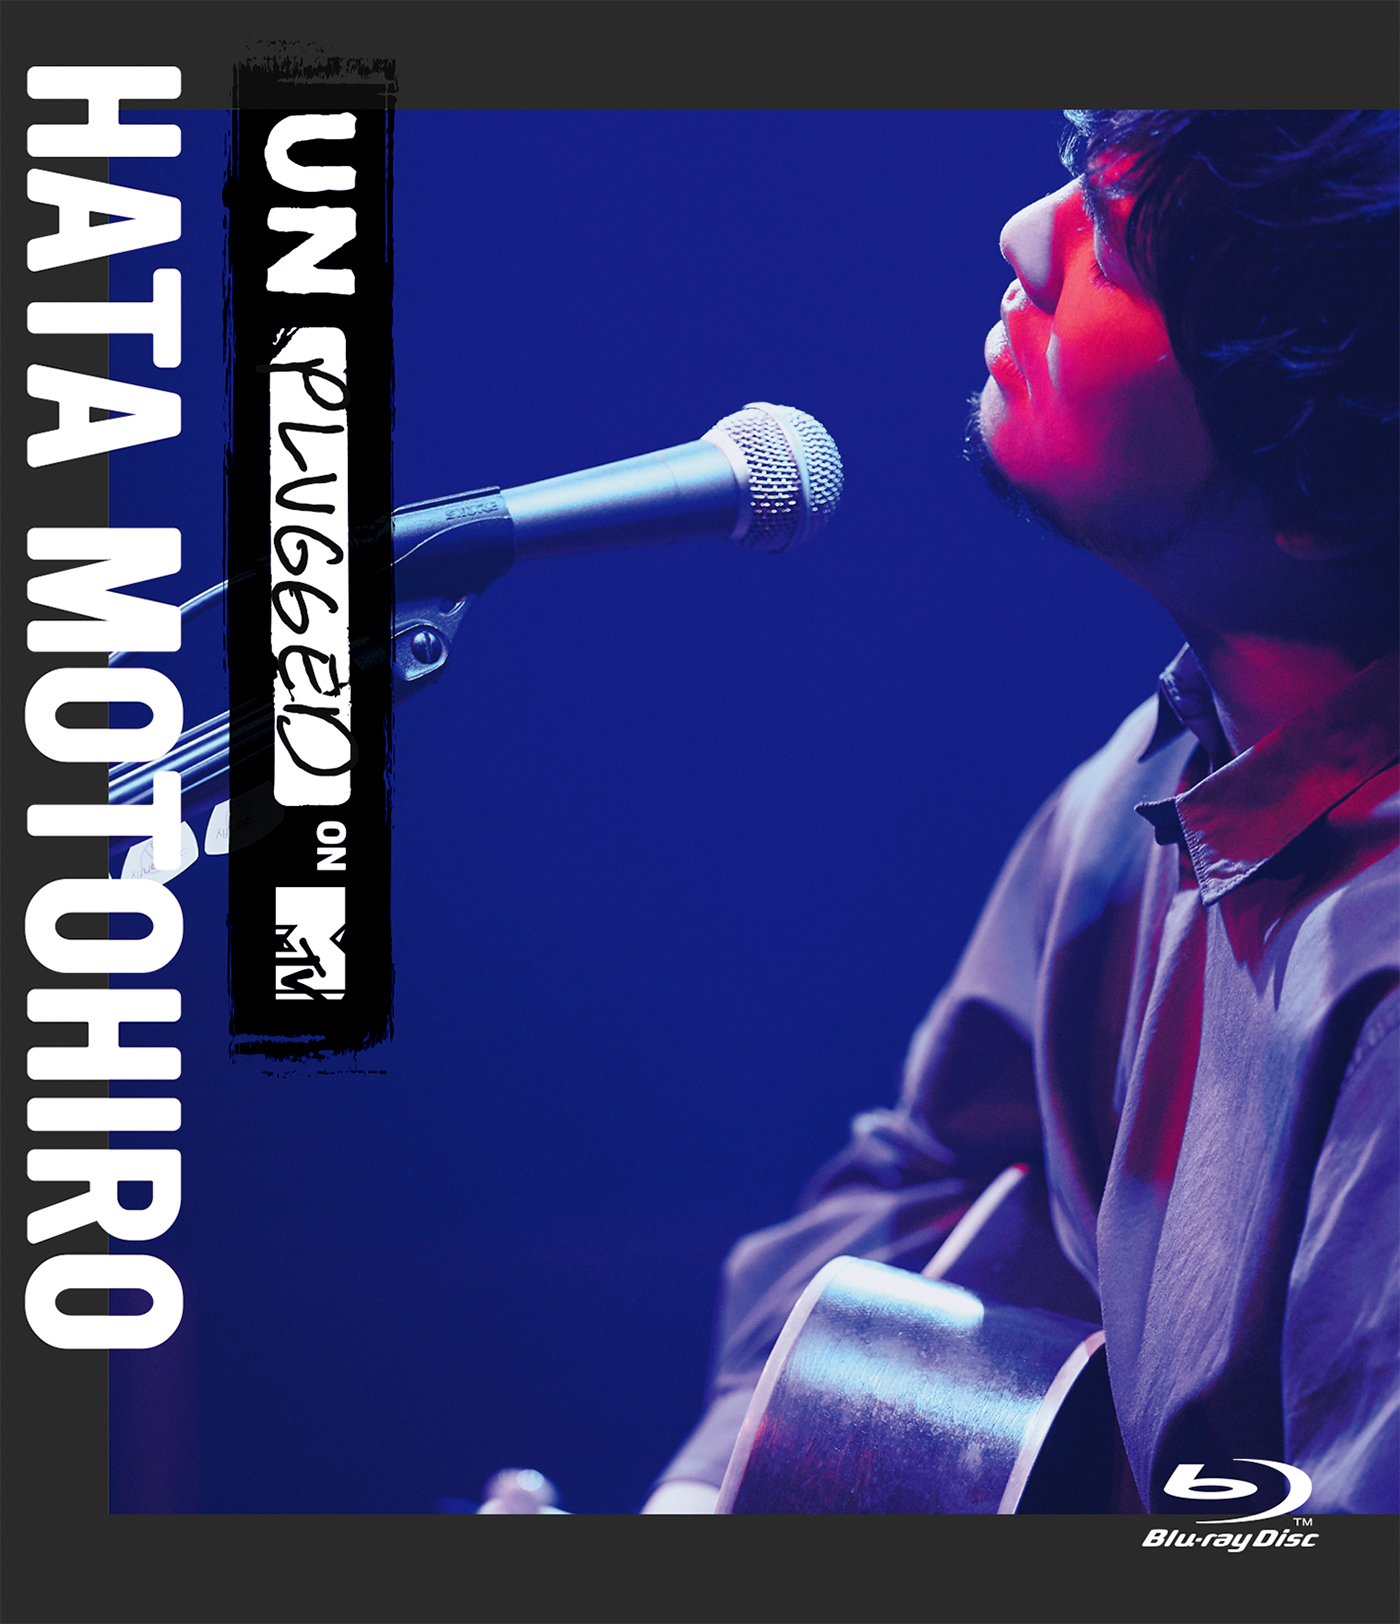 『MTV Unplugged: Hata Motohiro』Blu-ray